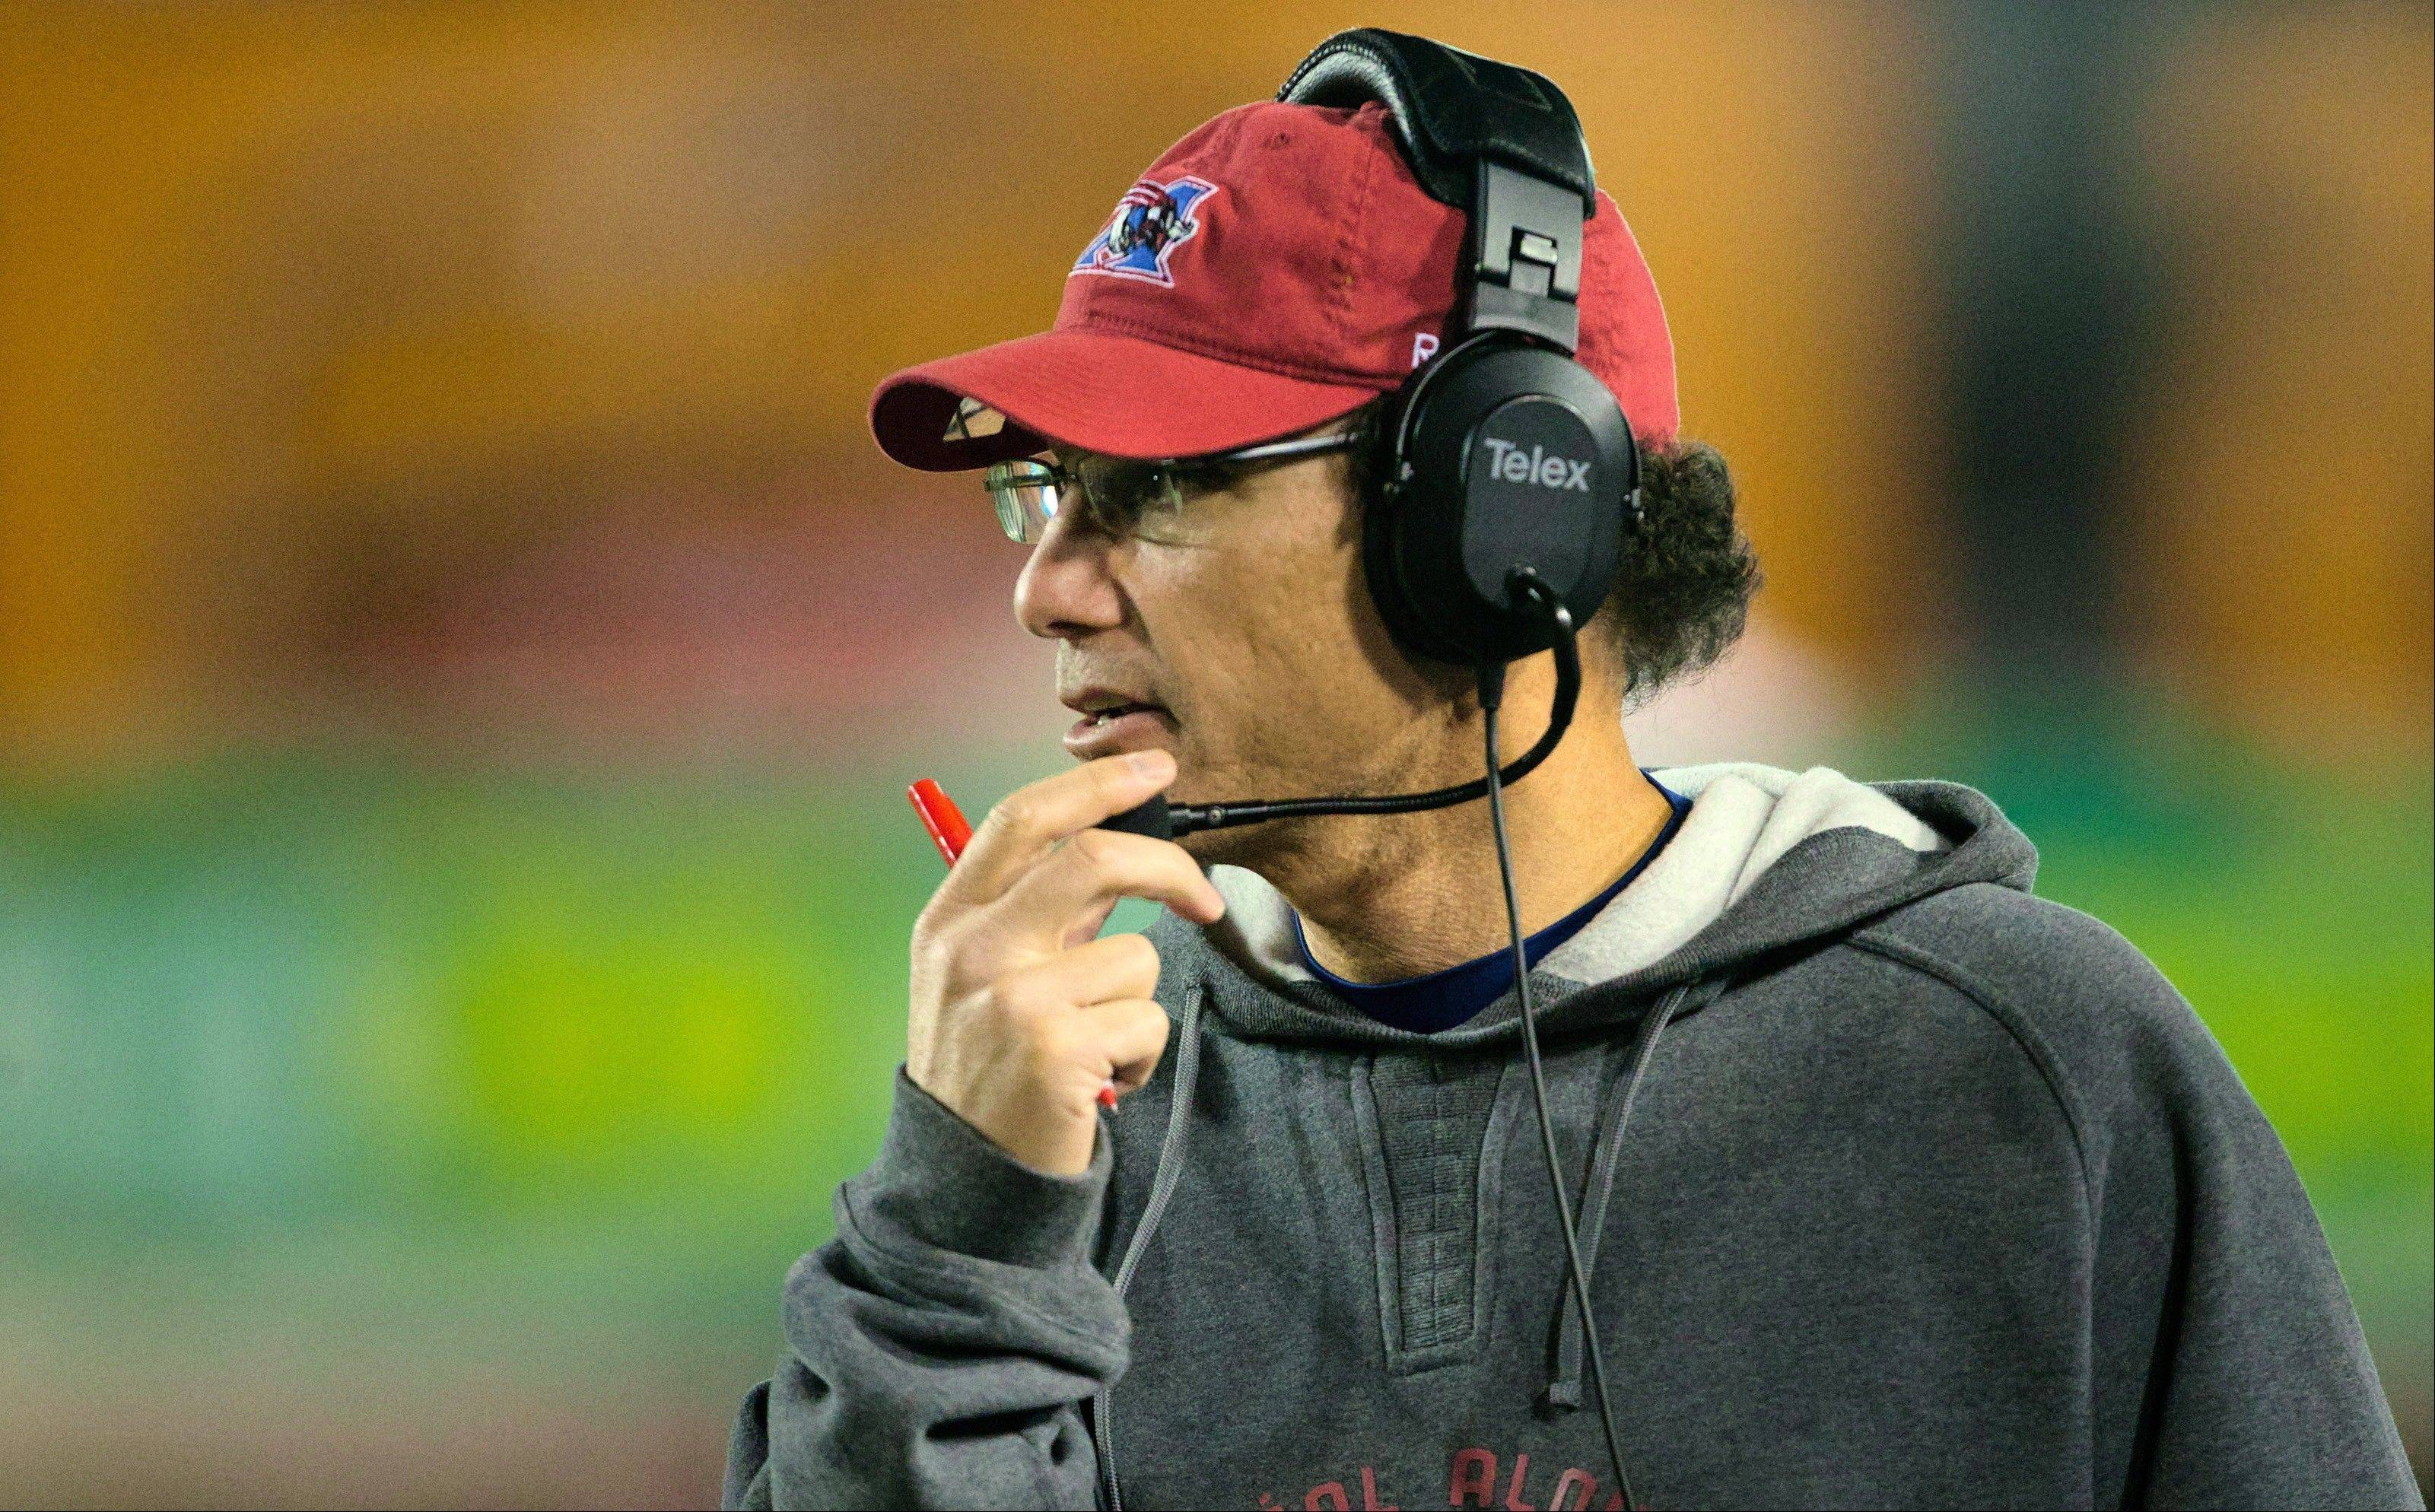 The Chicago Bears will introducee Marc Trestman as their new head coach at a news conference Thursday. Trestman has five years of head coaching experience in the CFL, and 17 years of experience in the NFL as an offensive coordinator or quarterback coach.